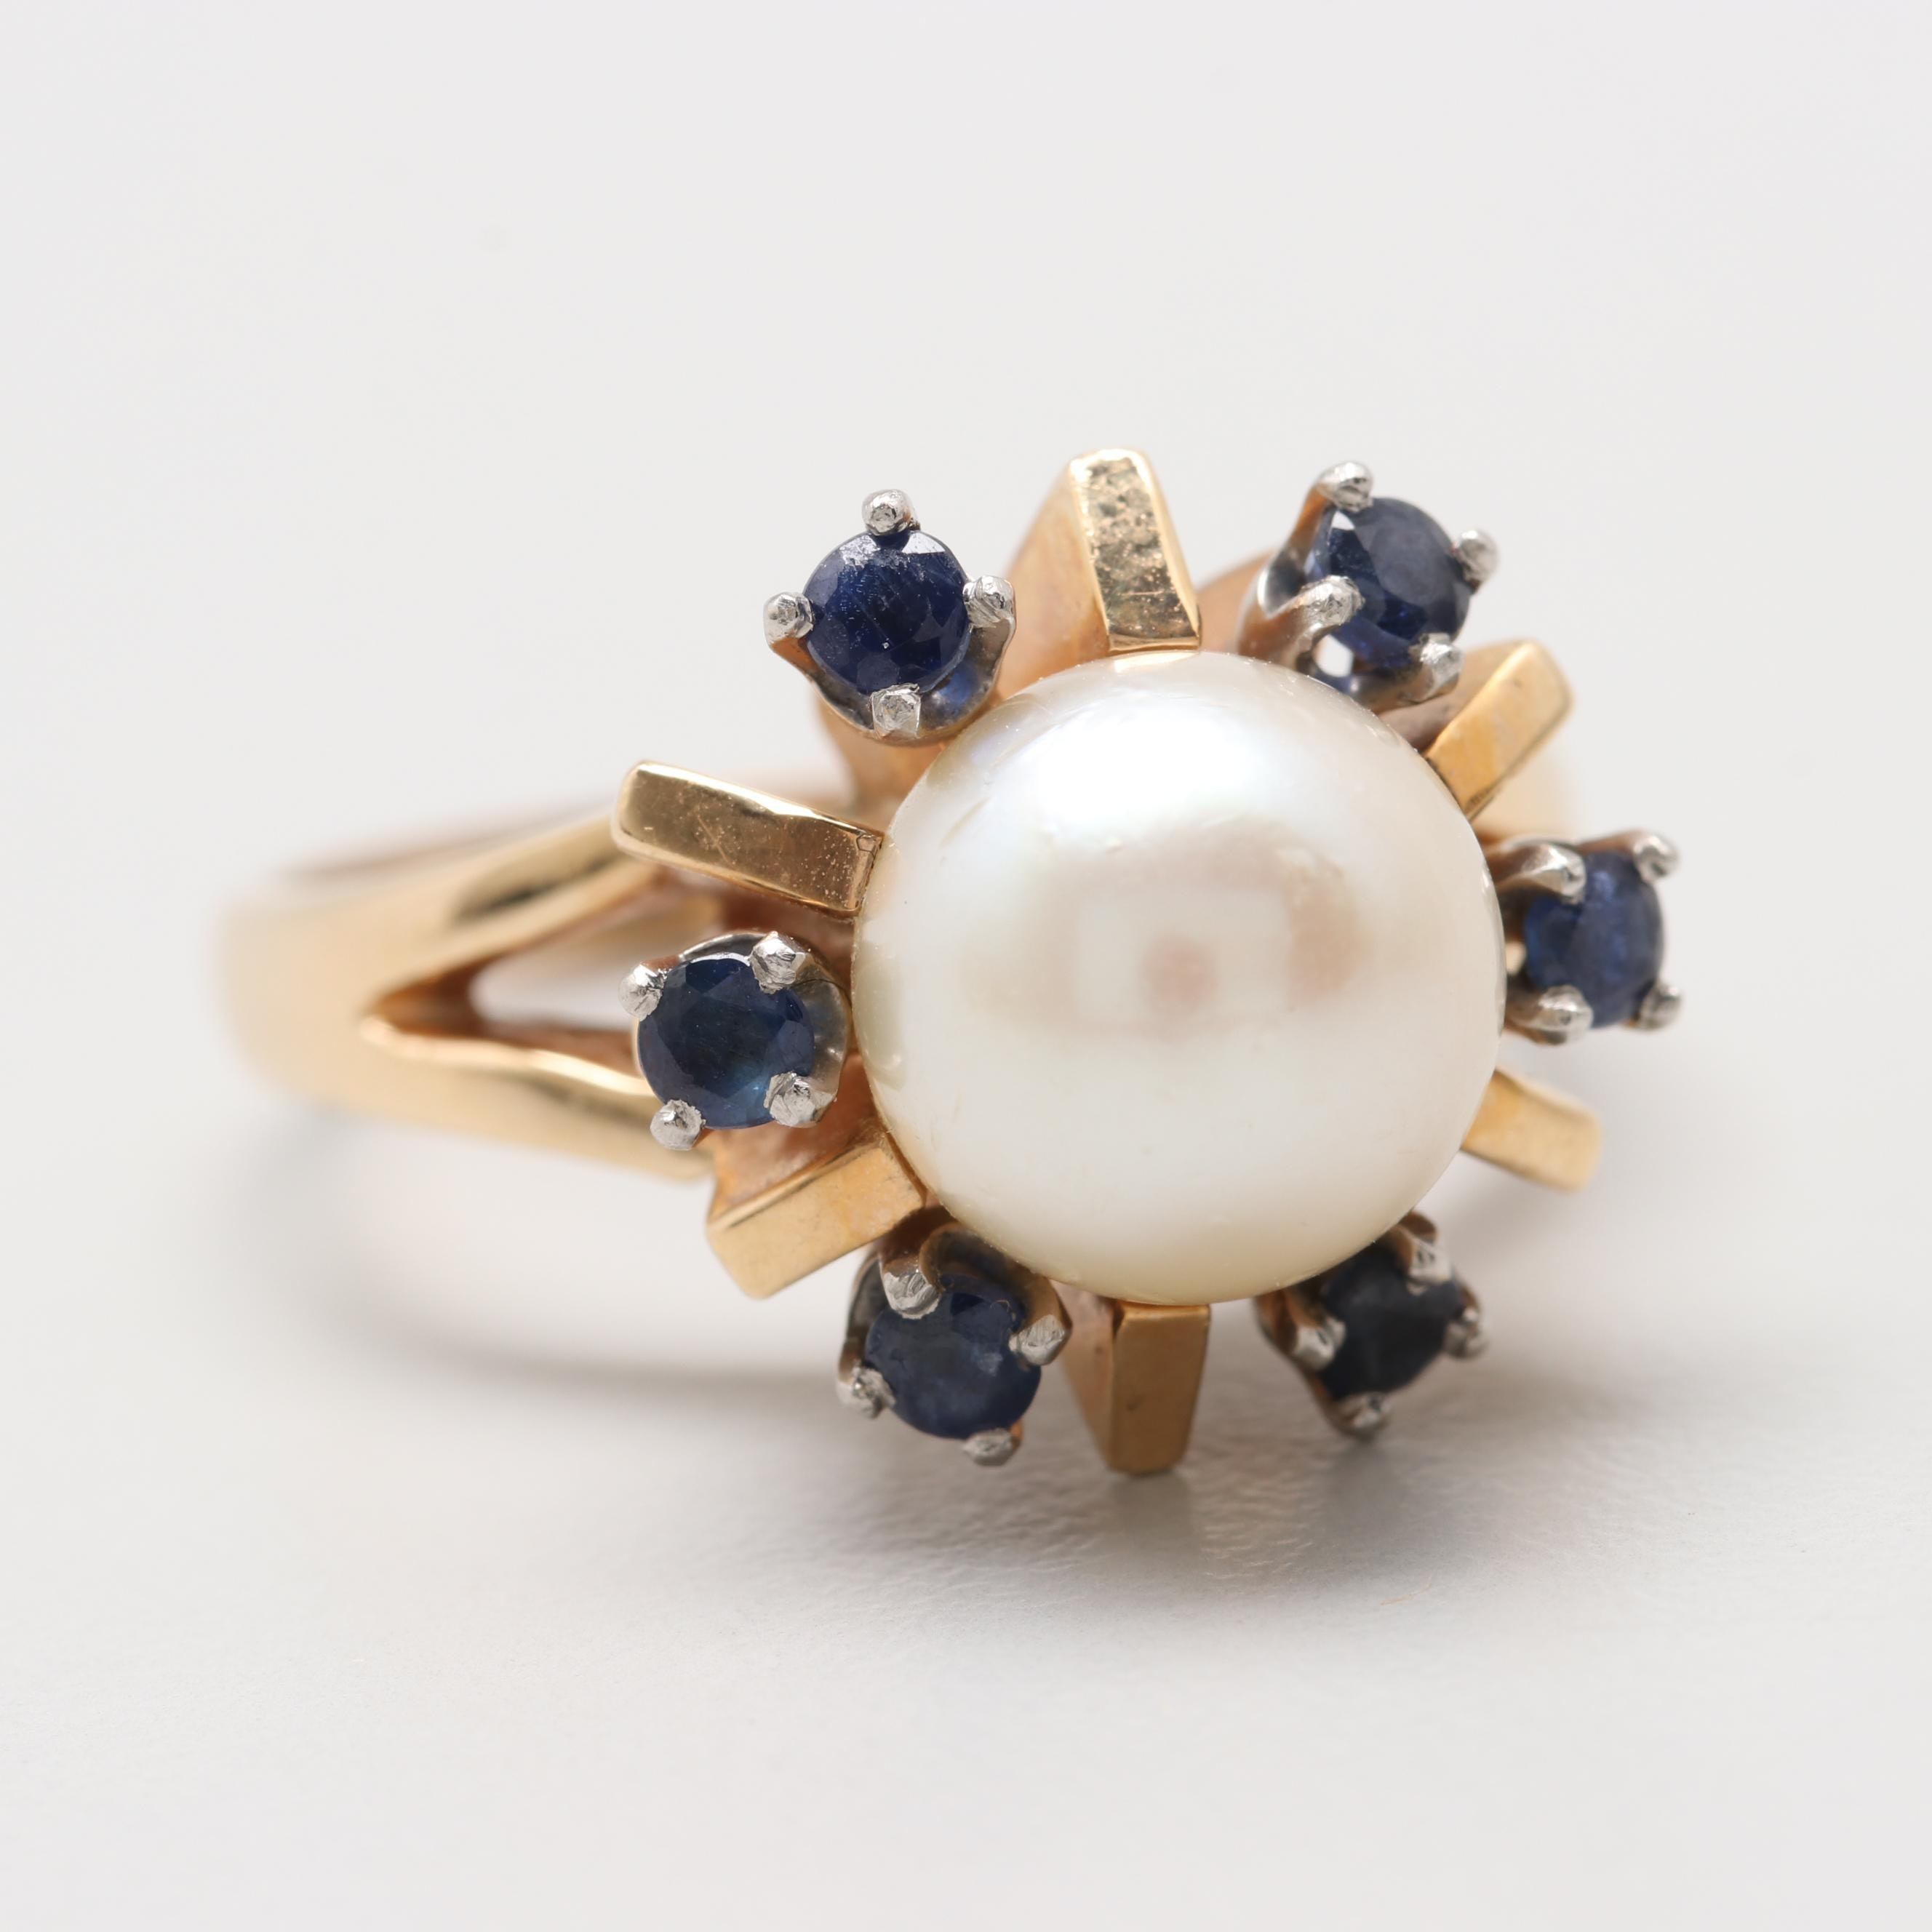 Retro Style 14K Gold Cultured Pearl and Sapphire Ring with Palladium Accents